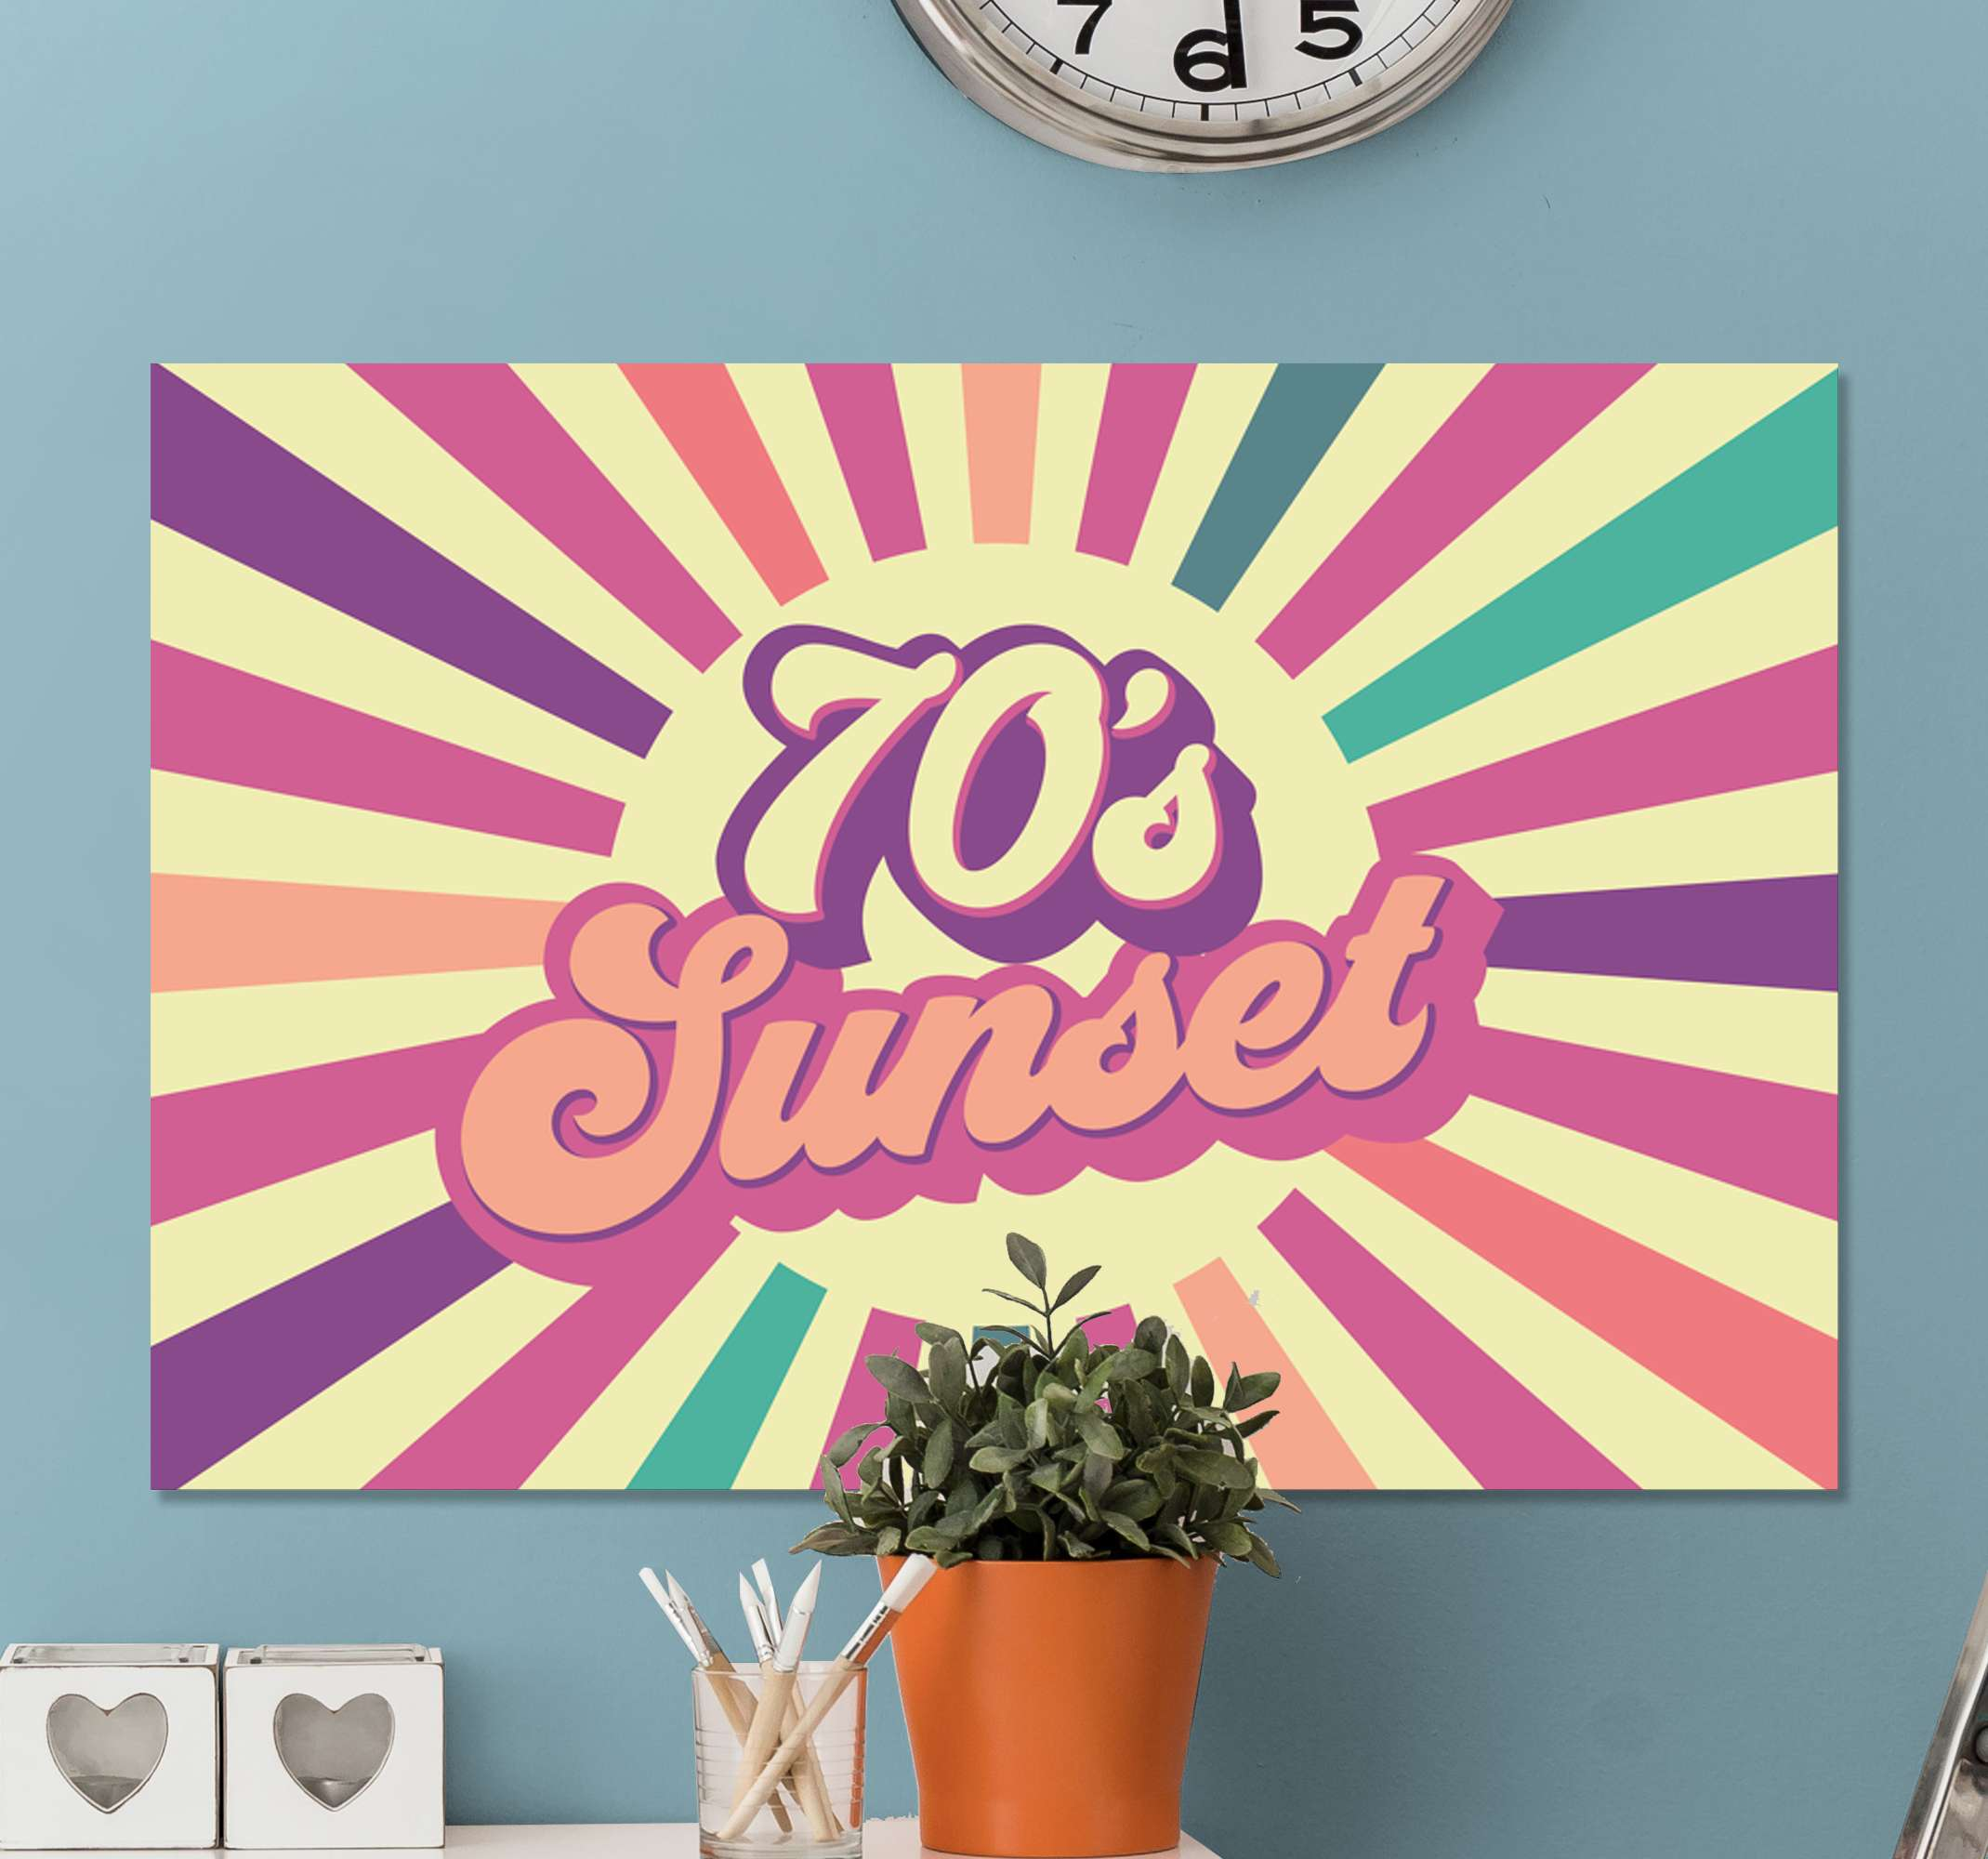 TenStickers. 70's geometric sun canvas wall art. Decorate your home with a peaceful and soothing aura with our original 70's geometric sun canvas prints. It is original and durable.